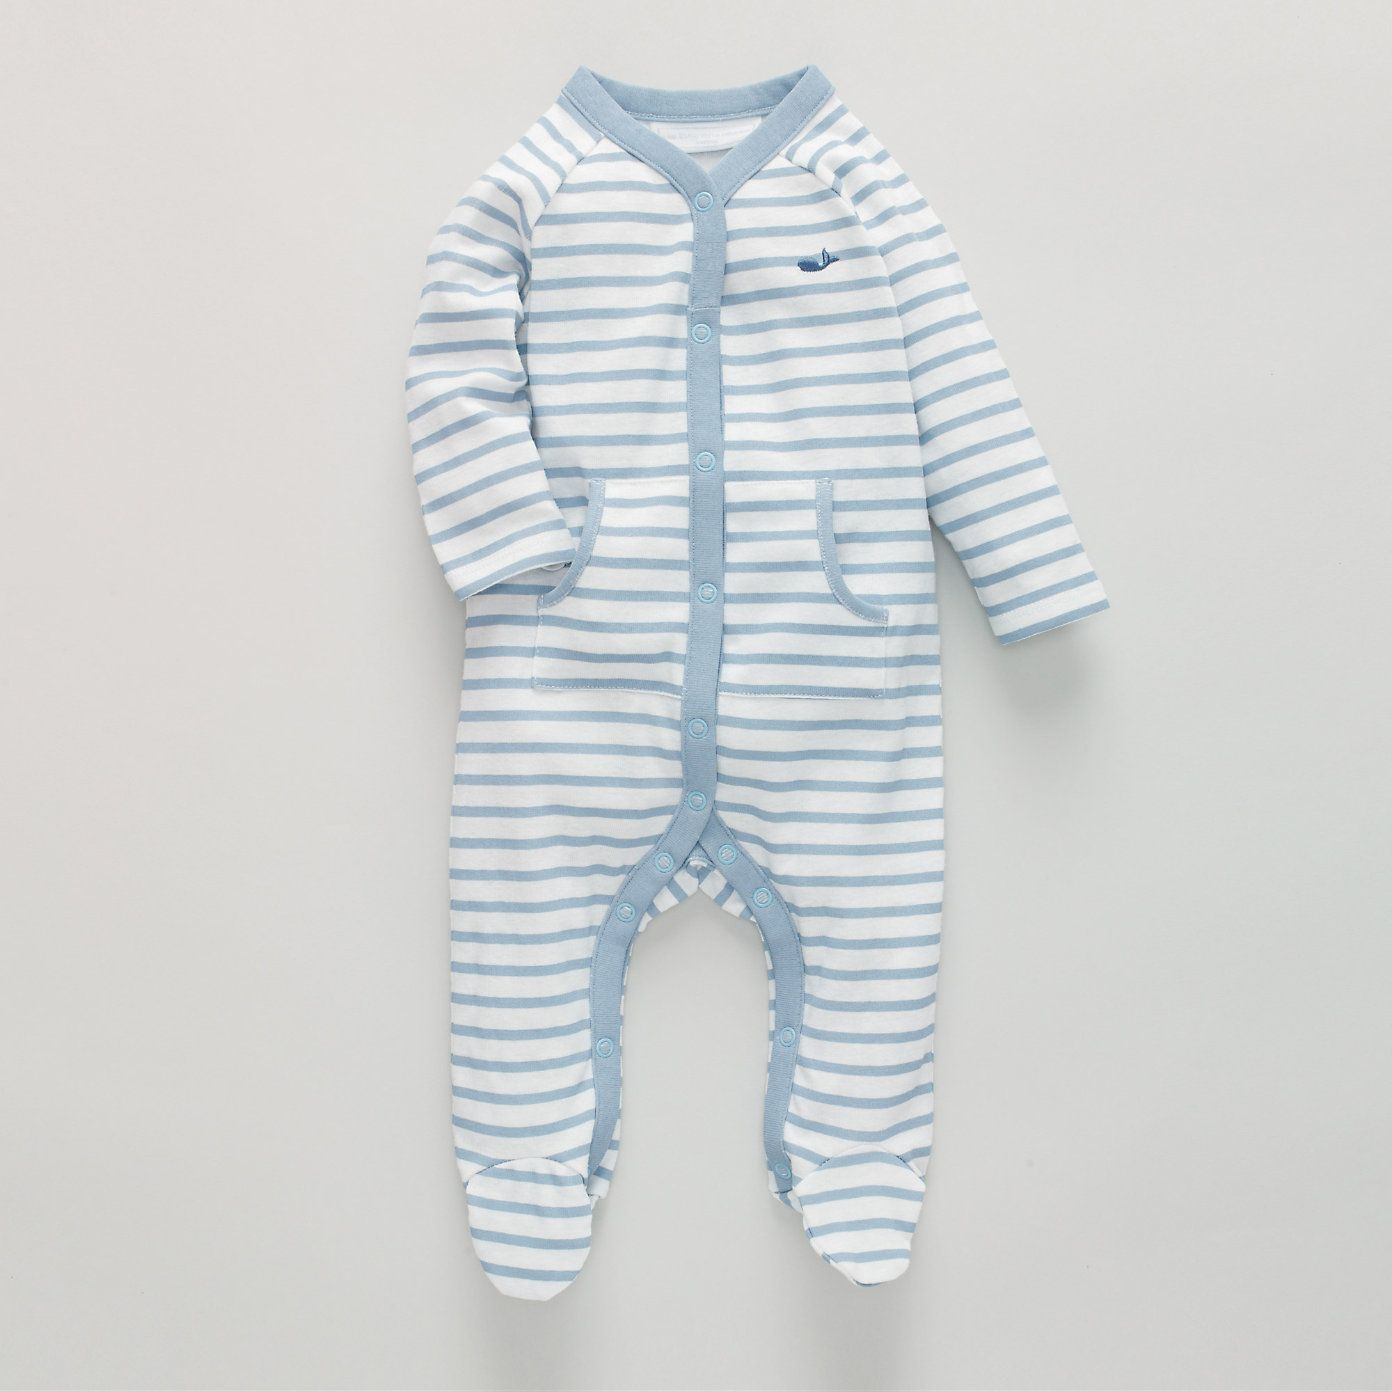 Whale Stripe Baby Sleepsuit $27.64